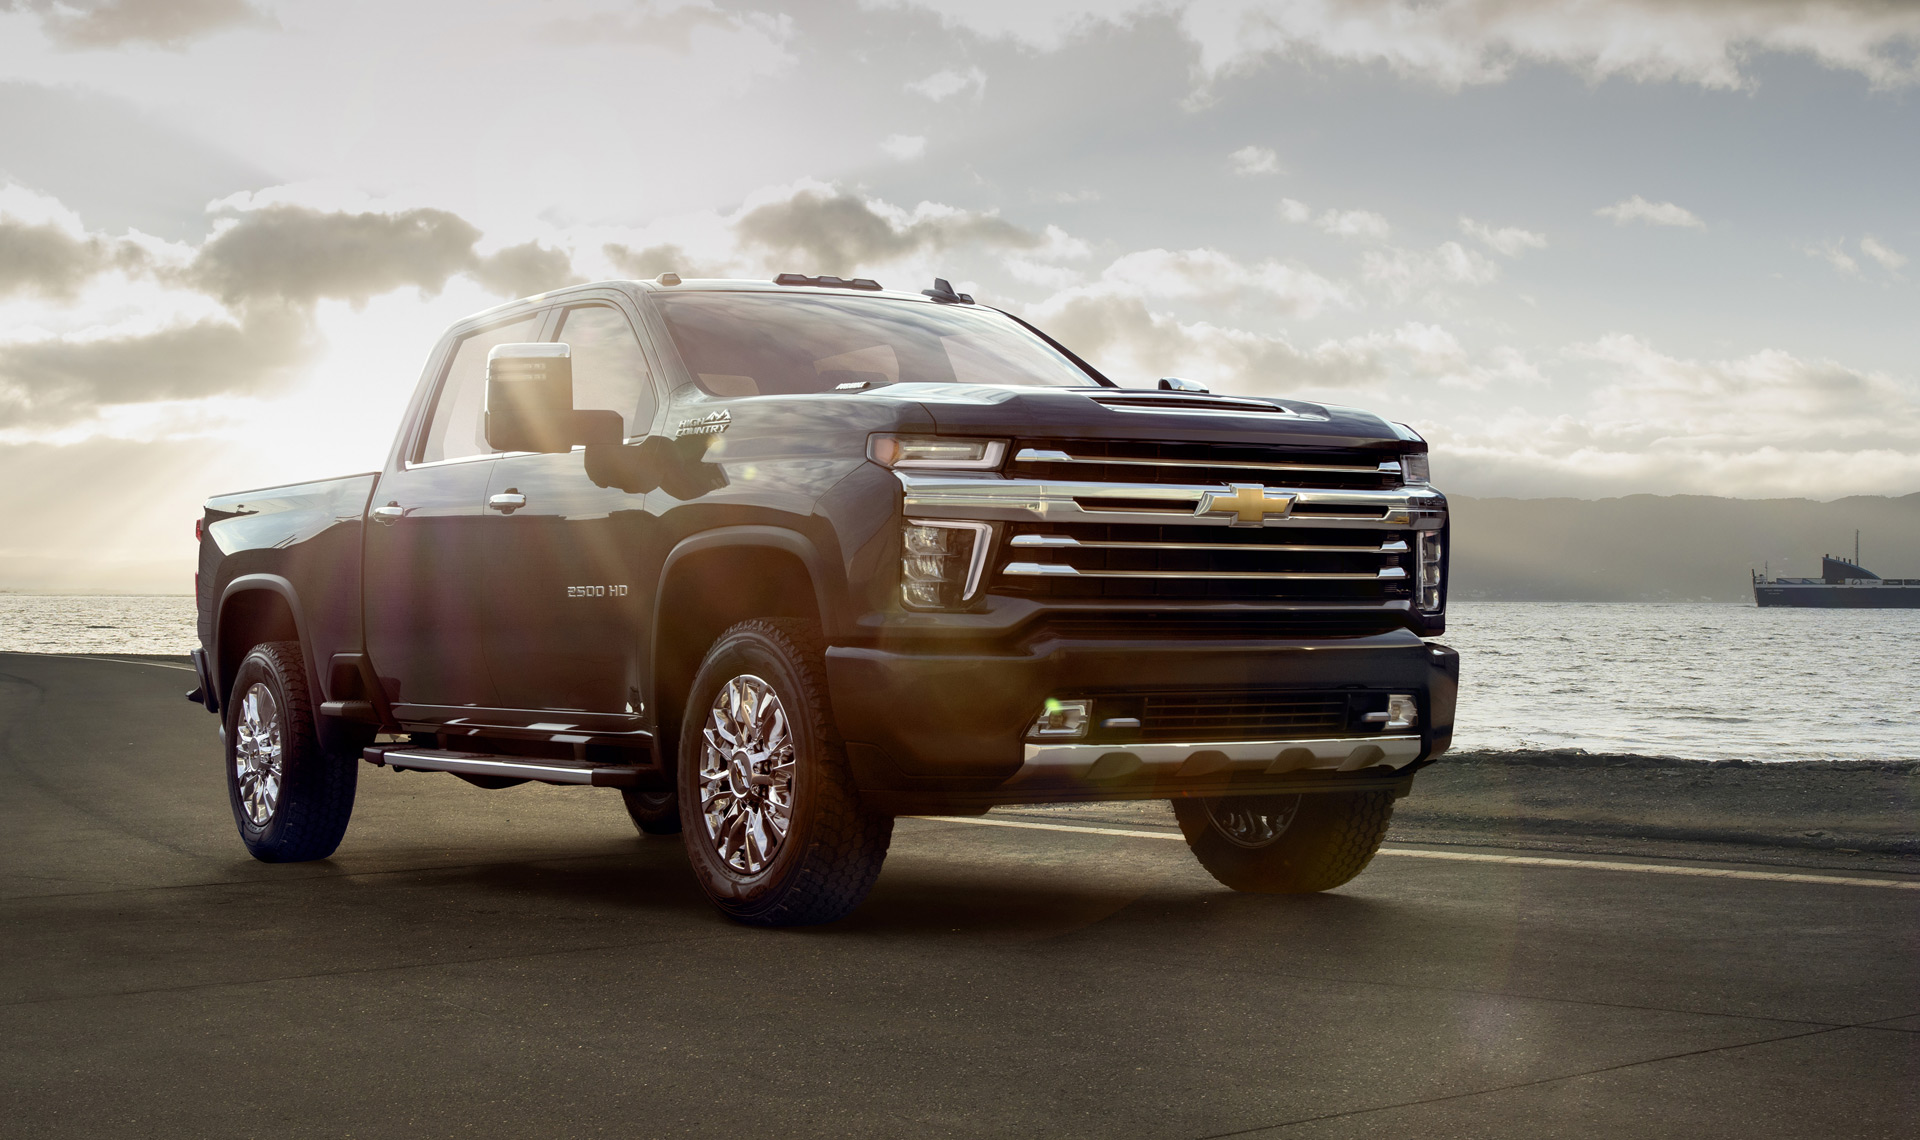 22 Great 2020 Chevrolet Silverado 2500Hd High Country Interior by 2020 Chevrolet Silverado 2500Hd High Country